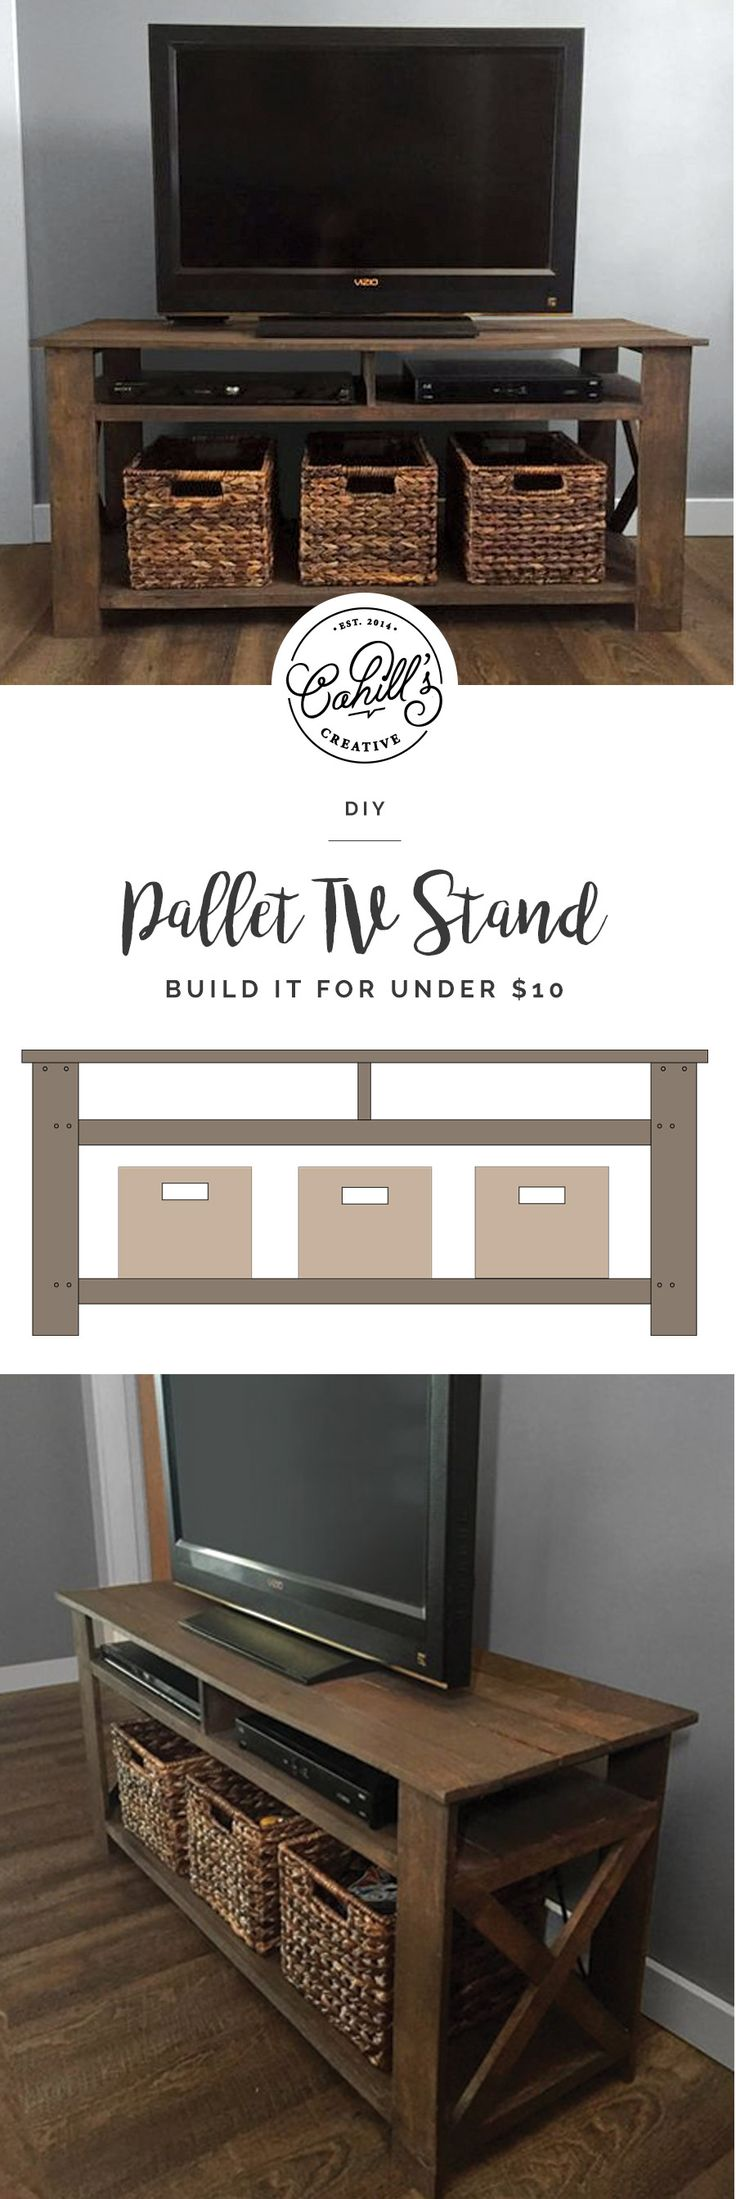 "DIY pallet tv stand! The plans include a material cut list, a list of necessary tools & hardware, assembly directions, and dimensions. The overall dimensions of the tv stand are 45""W x 15""L x 21""H.    DIY, Pallet Tv Stand, Pallet Furniture, Farmhouse Style, DIY Tv Stand"